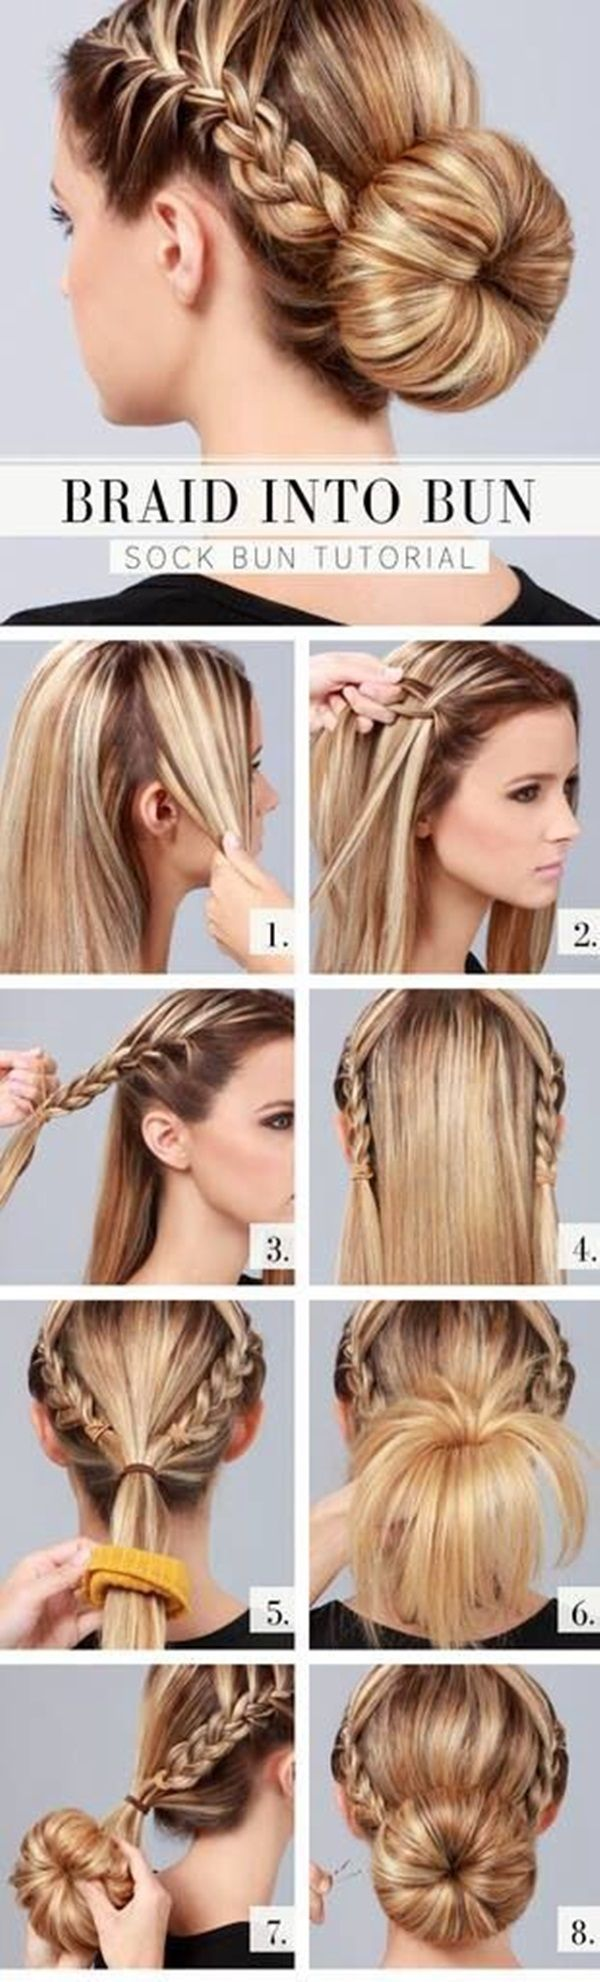 Quick Hairstyle Tutorials For Office Women (9)